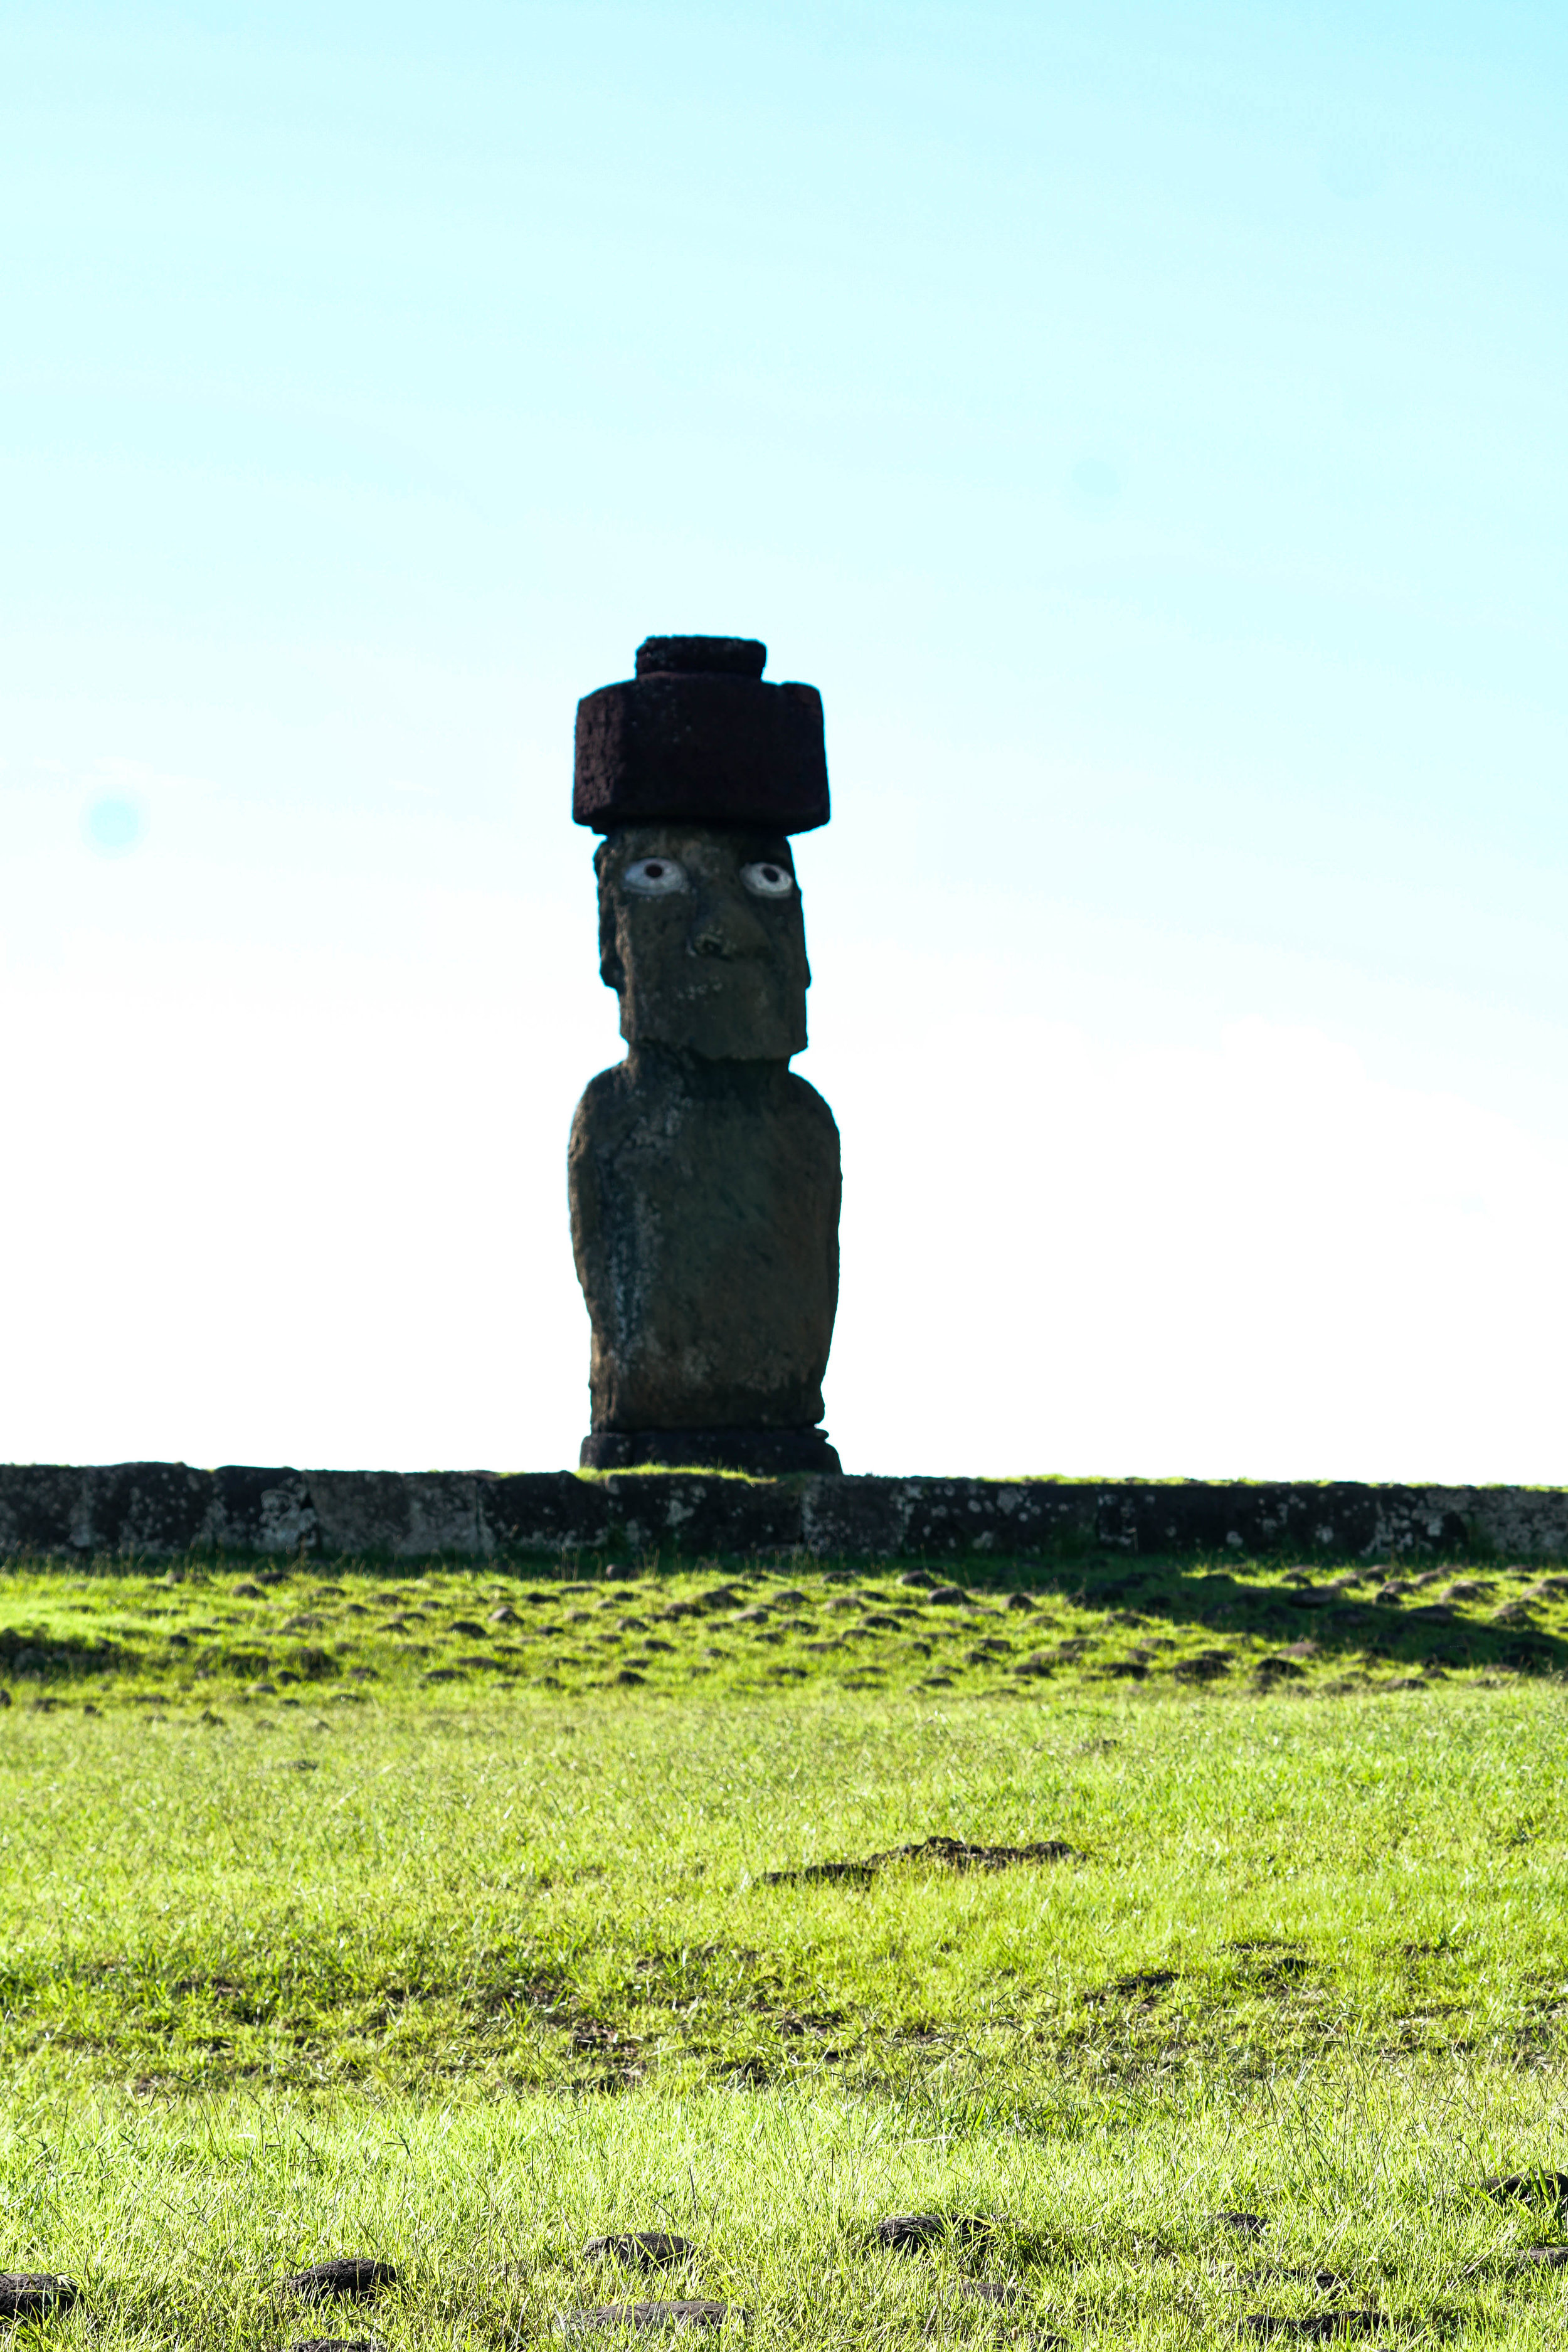 This moai is a re-creation, erected to demonstrate what a complete moai would have looked like, complete with red top hat and gemstone eyes.